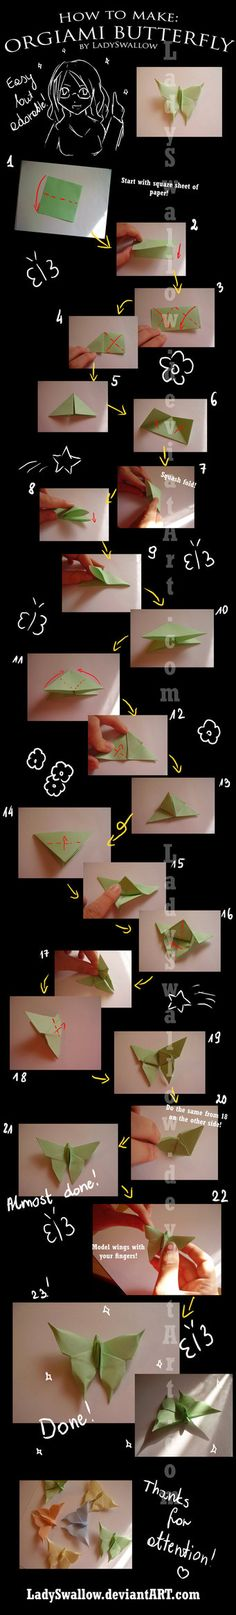 Origami butterfly - step by step tutorial! Now you can make a butterfly - easy but really beautiful! ^^ I hope that thi. Origami butterfly-step by step Diy Origami, Origami Butterfly Easy, Origami And Quilling, Origami And Kirigami, Paper Crafts Origami, Butterfly Crafts, Diy Paper, Oragami, Butterfly Mobile